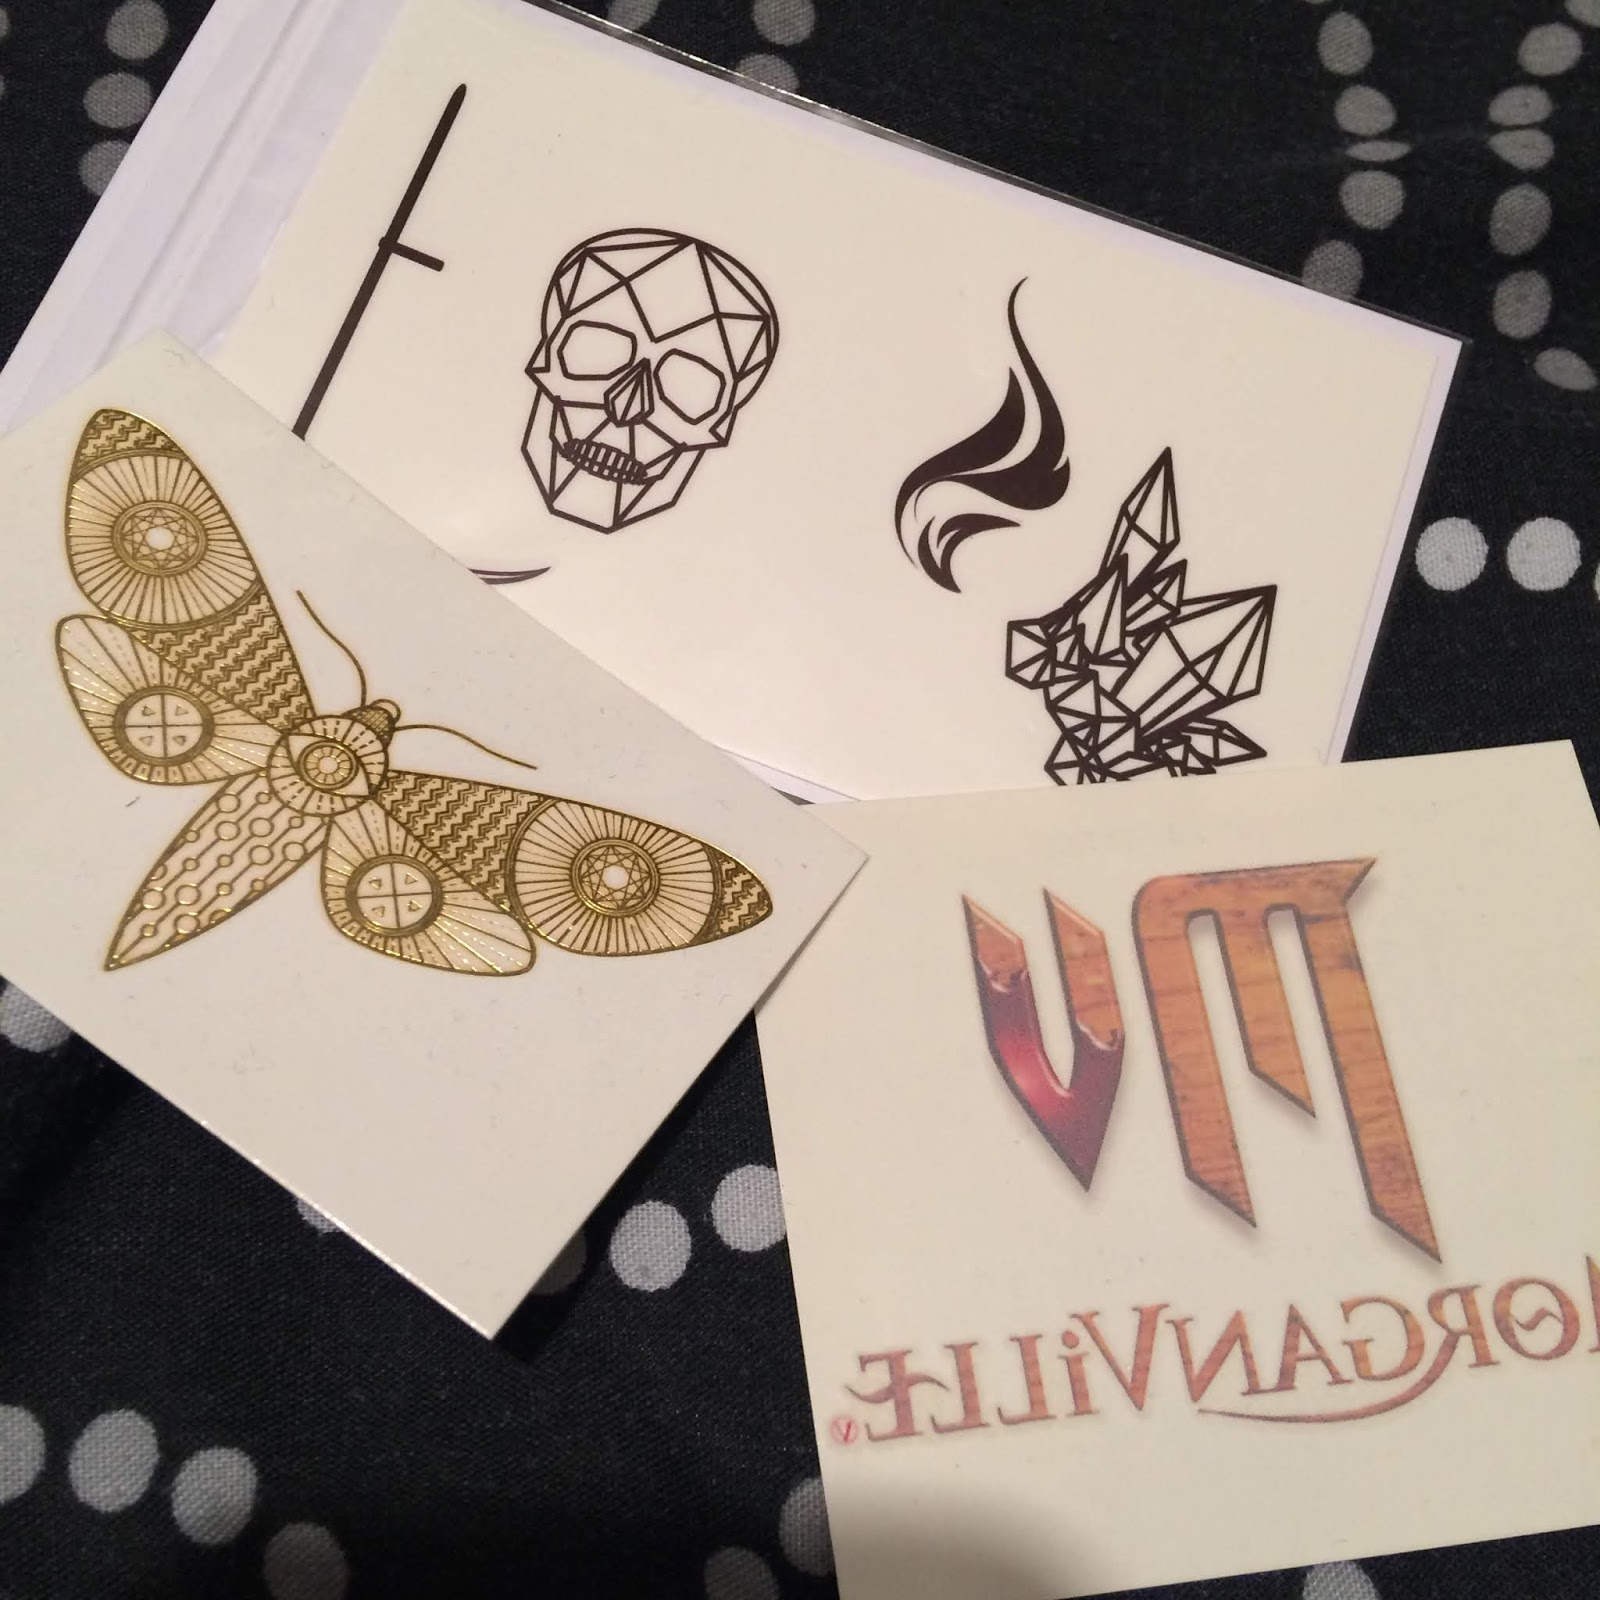 Temporary tattoos for Morganville Vampires series and Strange the Dreamer. The others are for an unknown book.